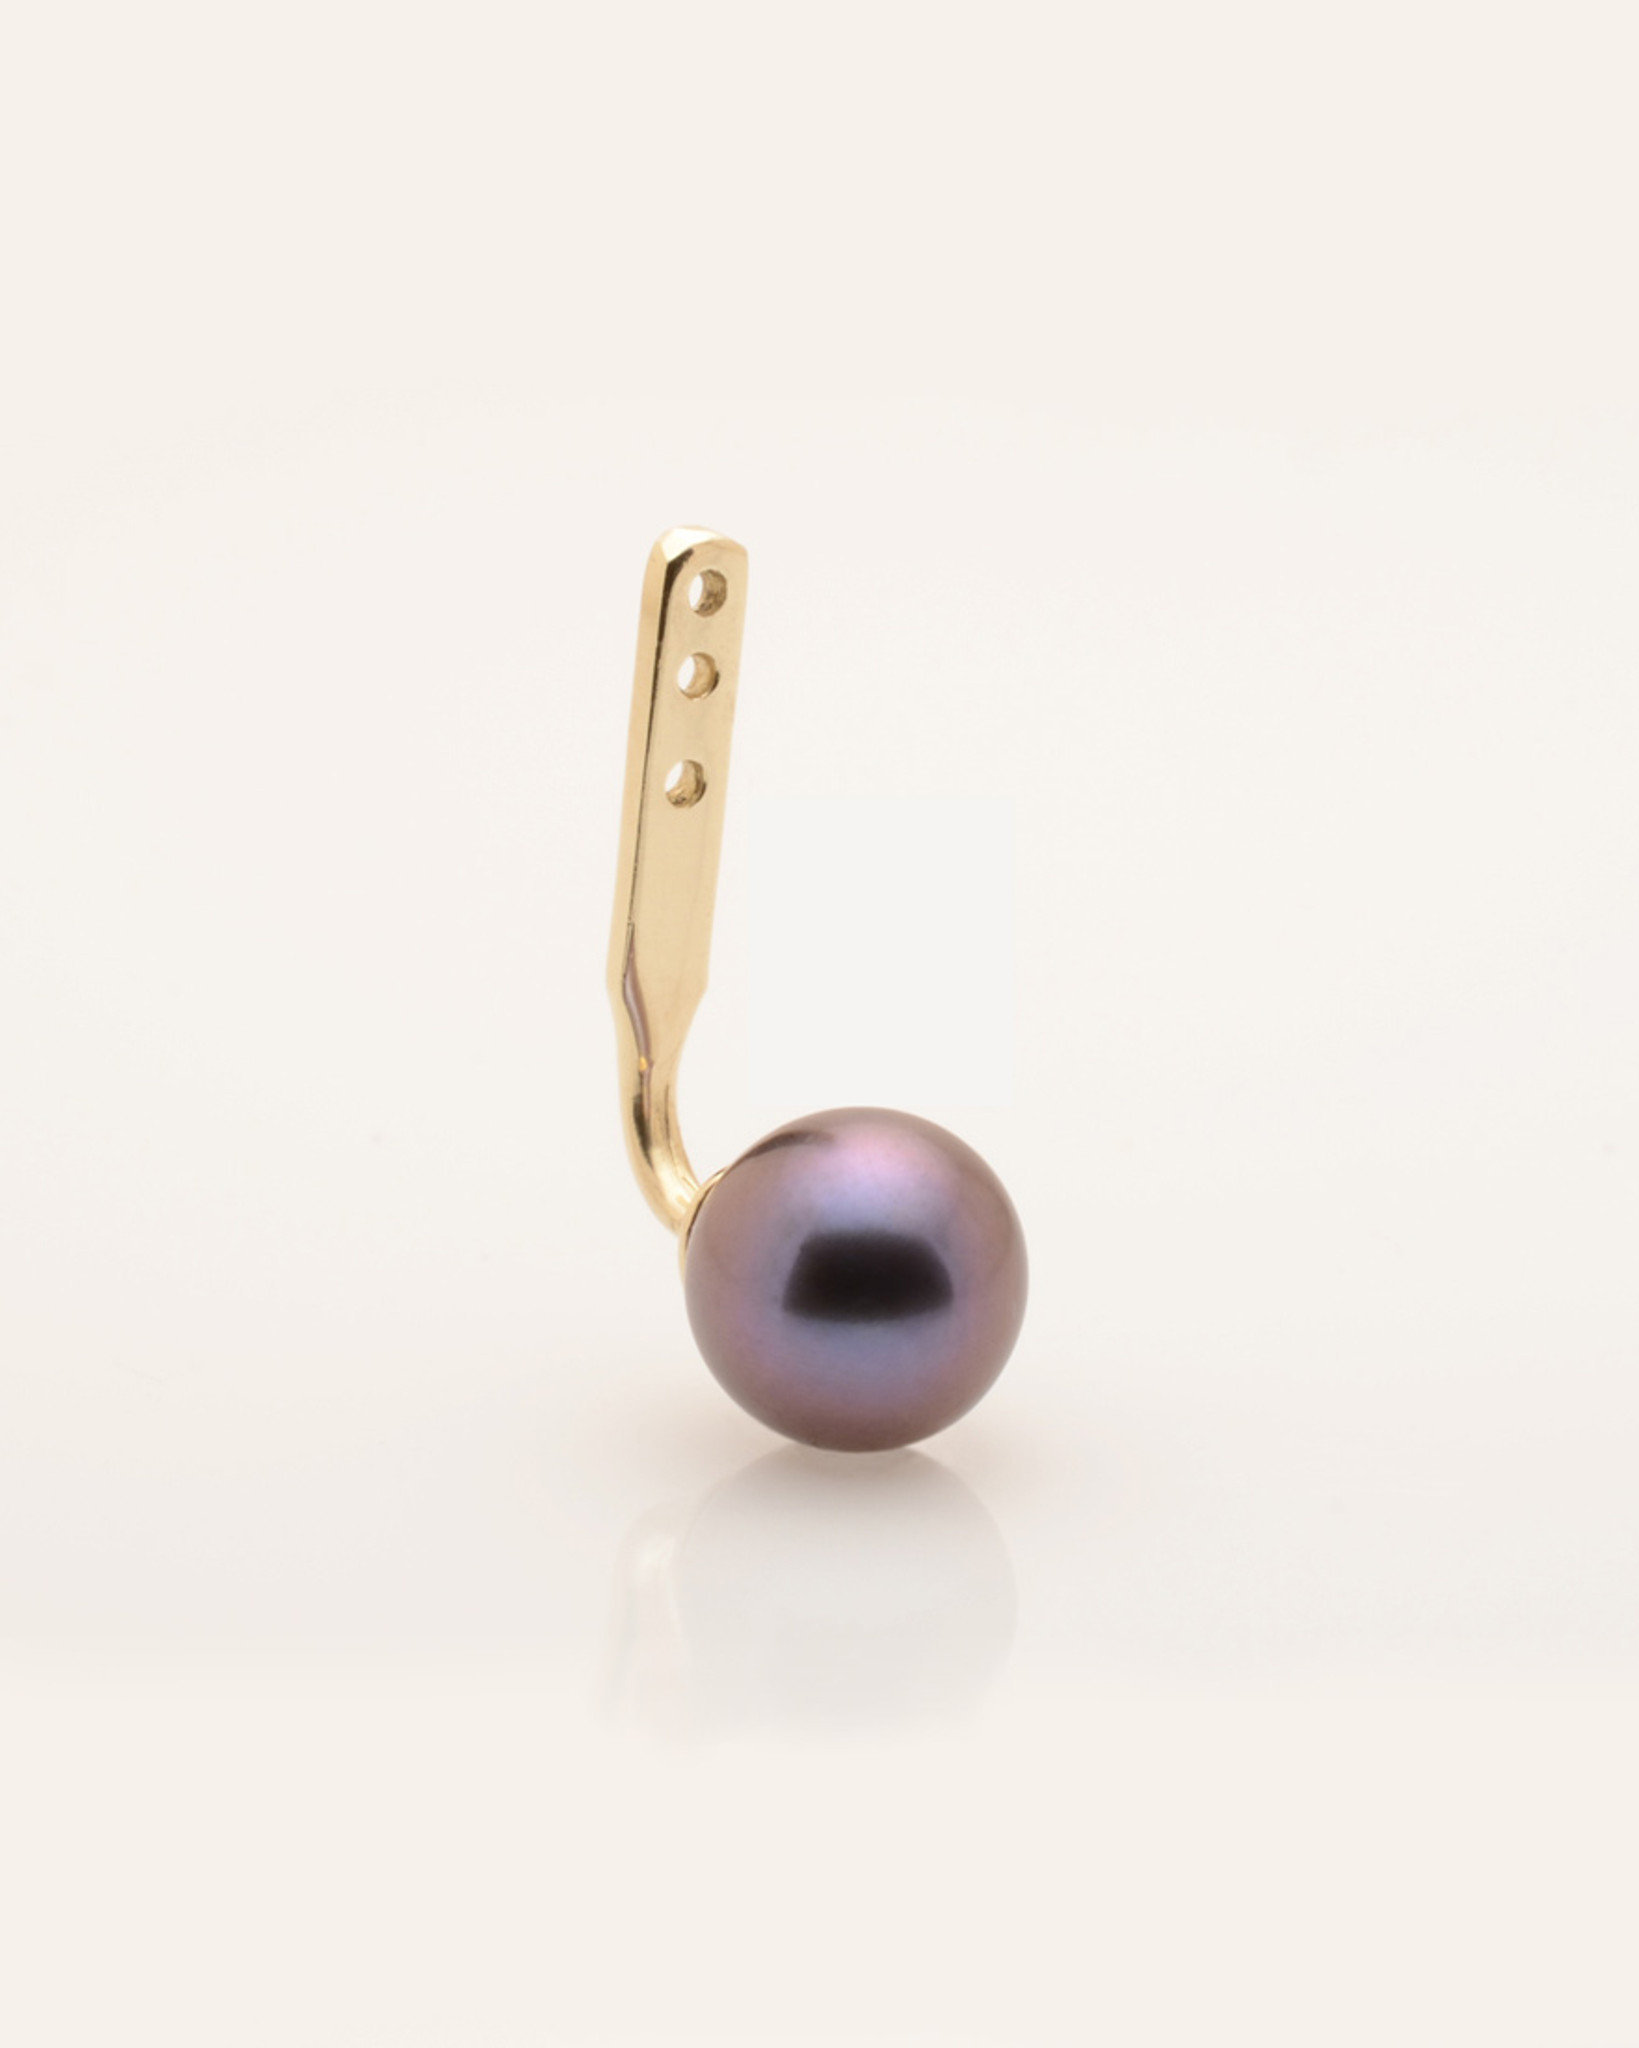 14k Gold Jacket with 6mm Black Pearl  by Nektar De Stagni. Mix and Match with any other single earring style.